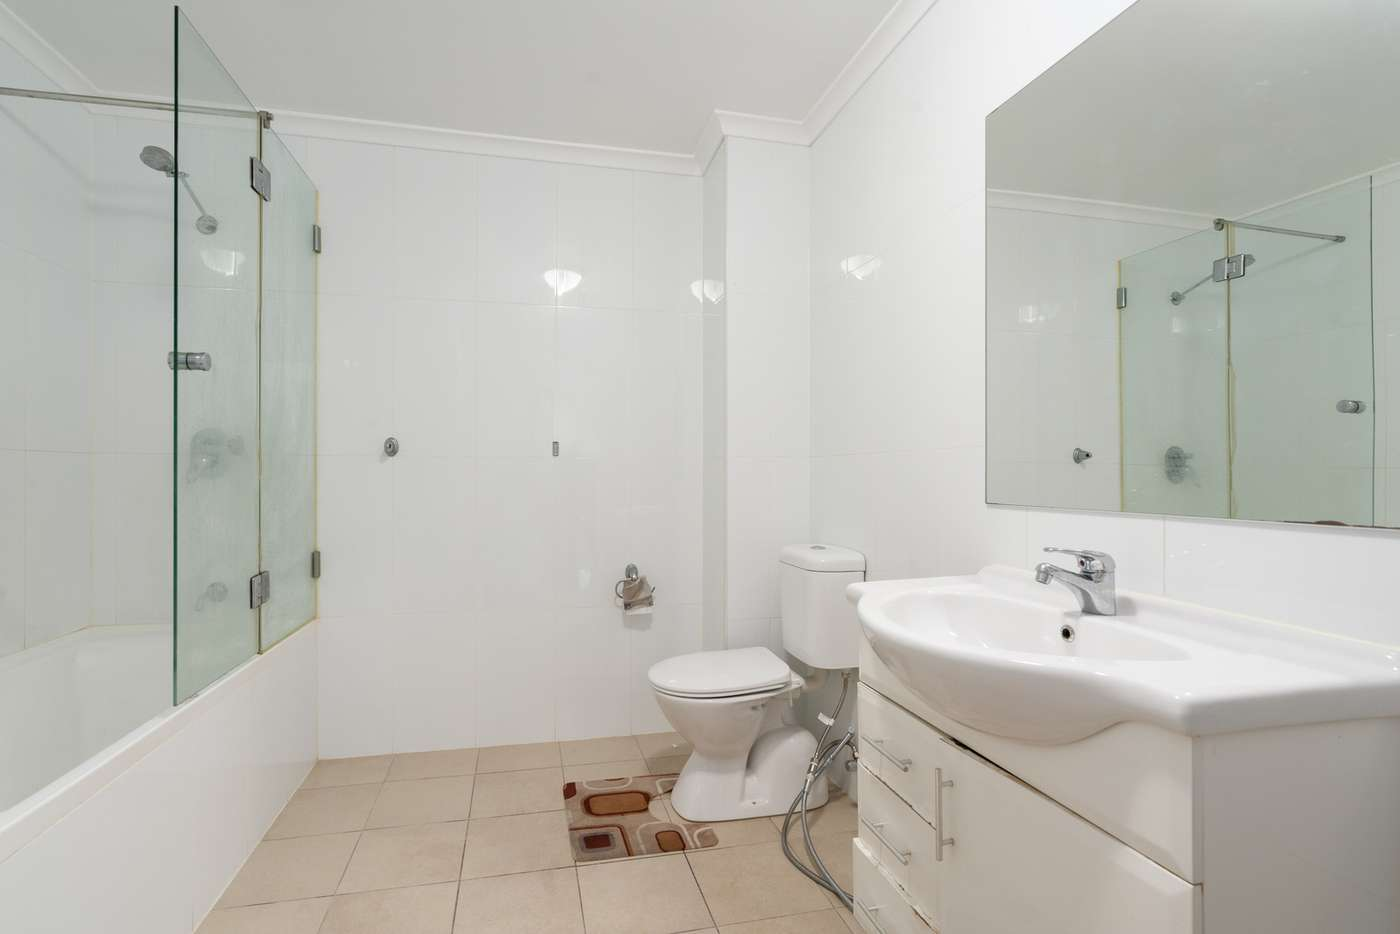 Sixth view of Homely apartment listing, 3207/57-59 Queen Street, Auburn NSW 2144